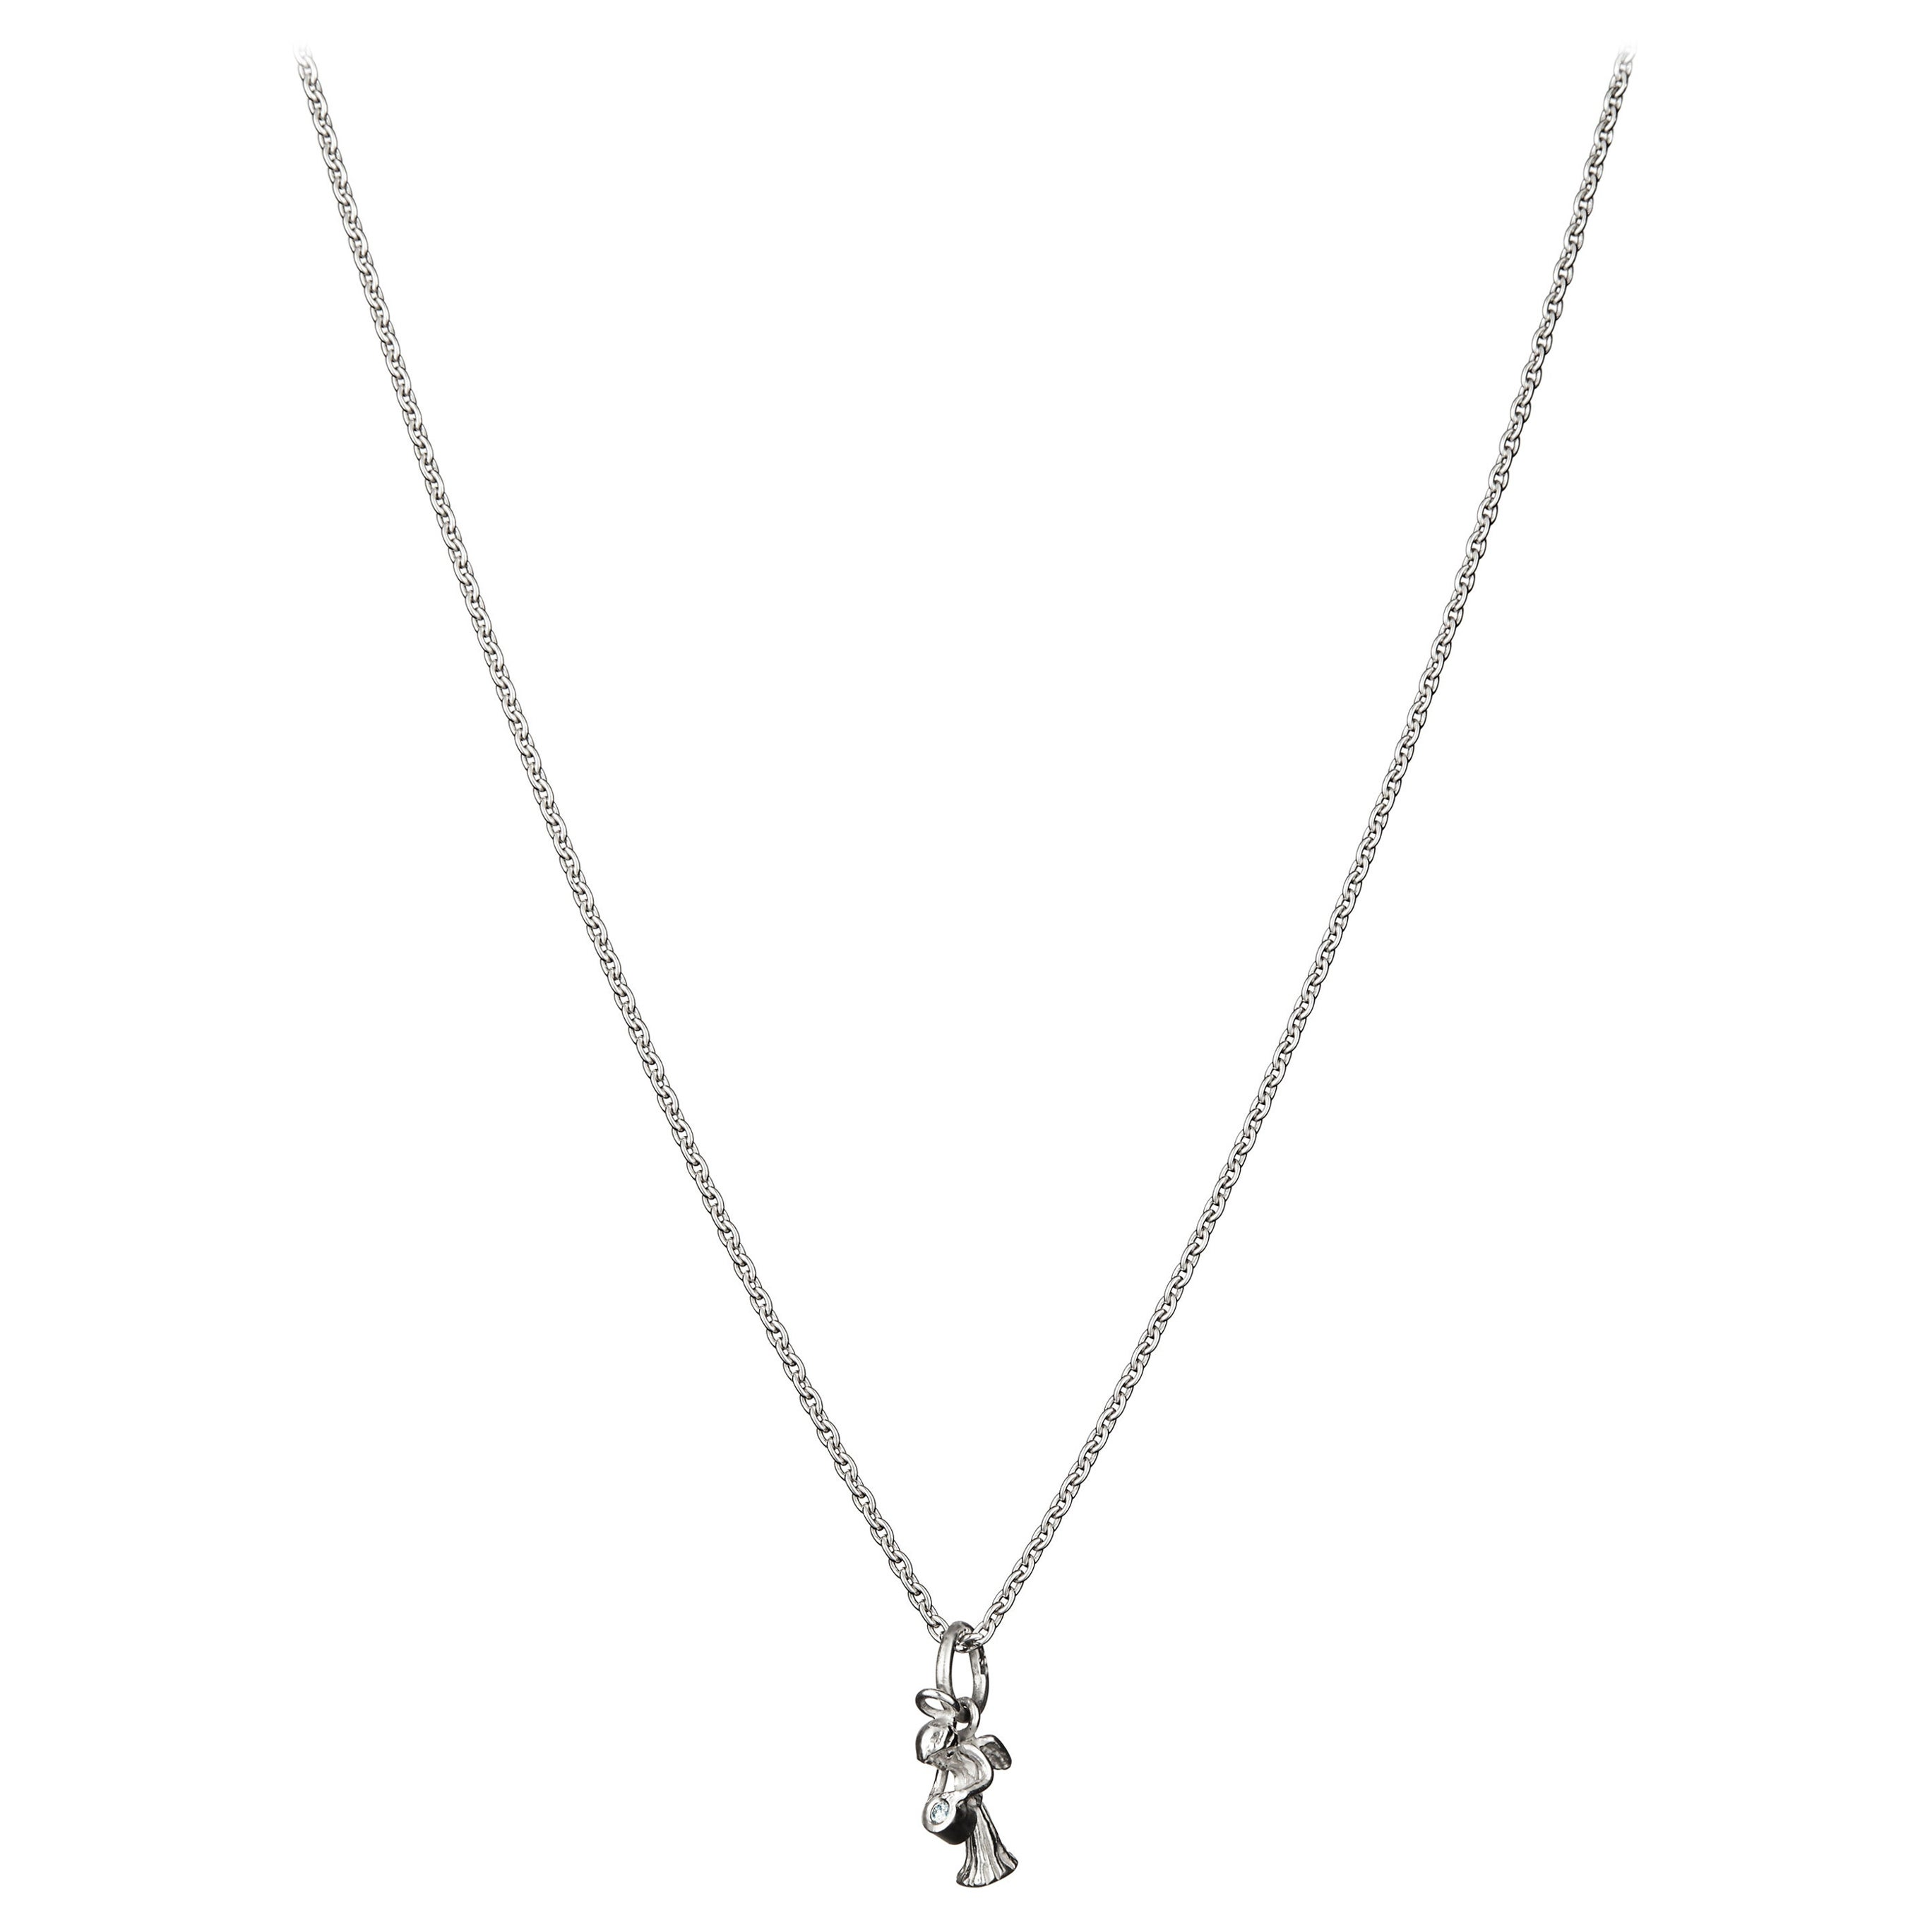 Guardian Angel Pendant with Chain Traceable Diamond 18k White Gold